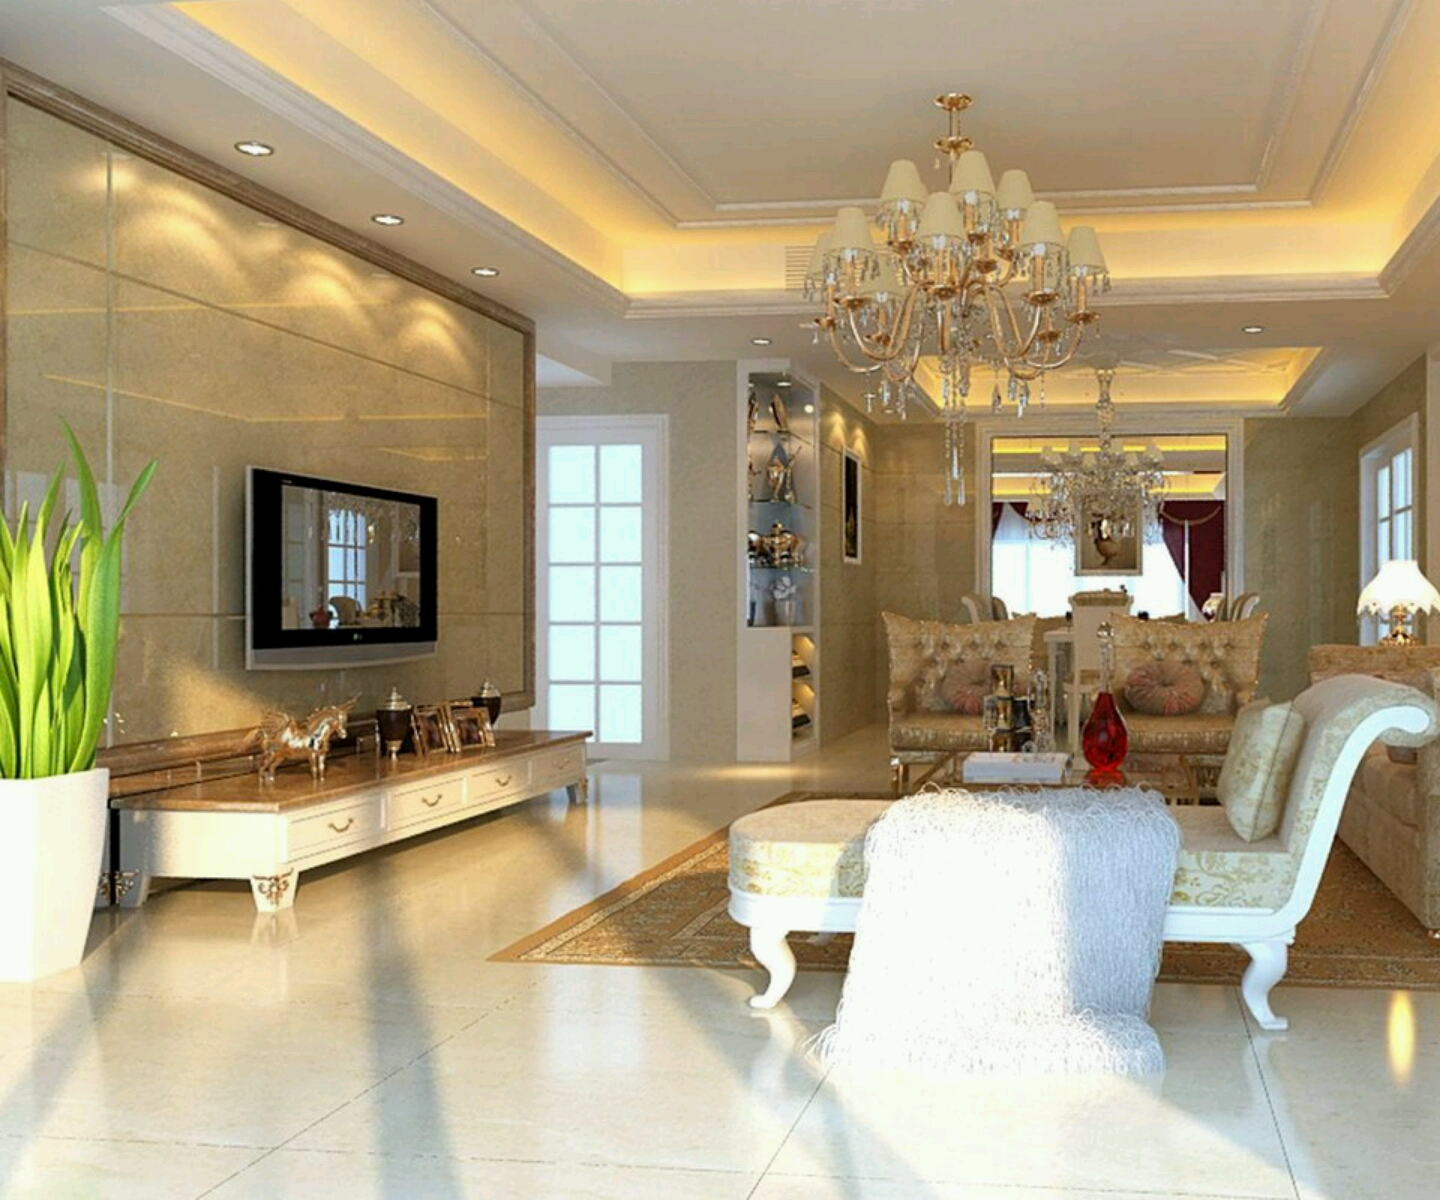 New home designs latest luxury homes interior decoration for Latest ideas for home decor